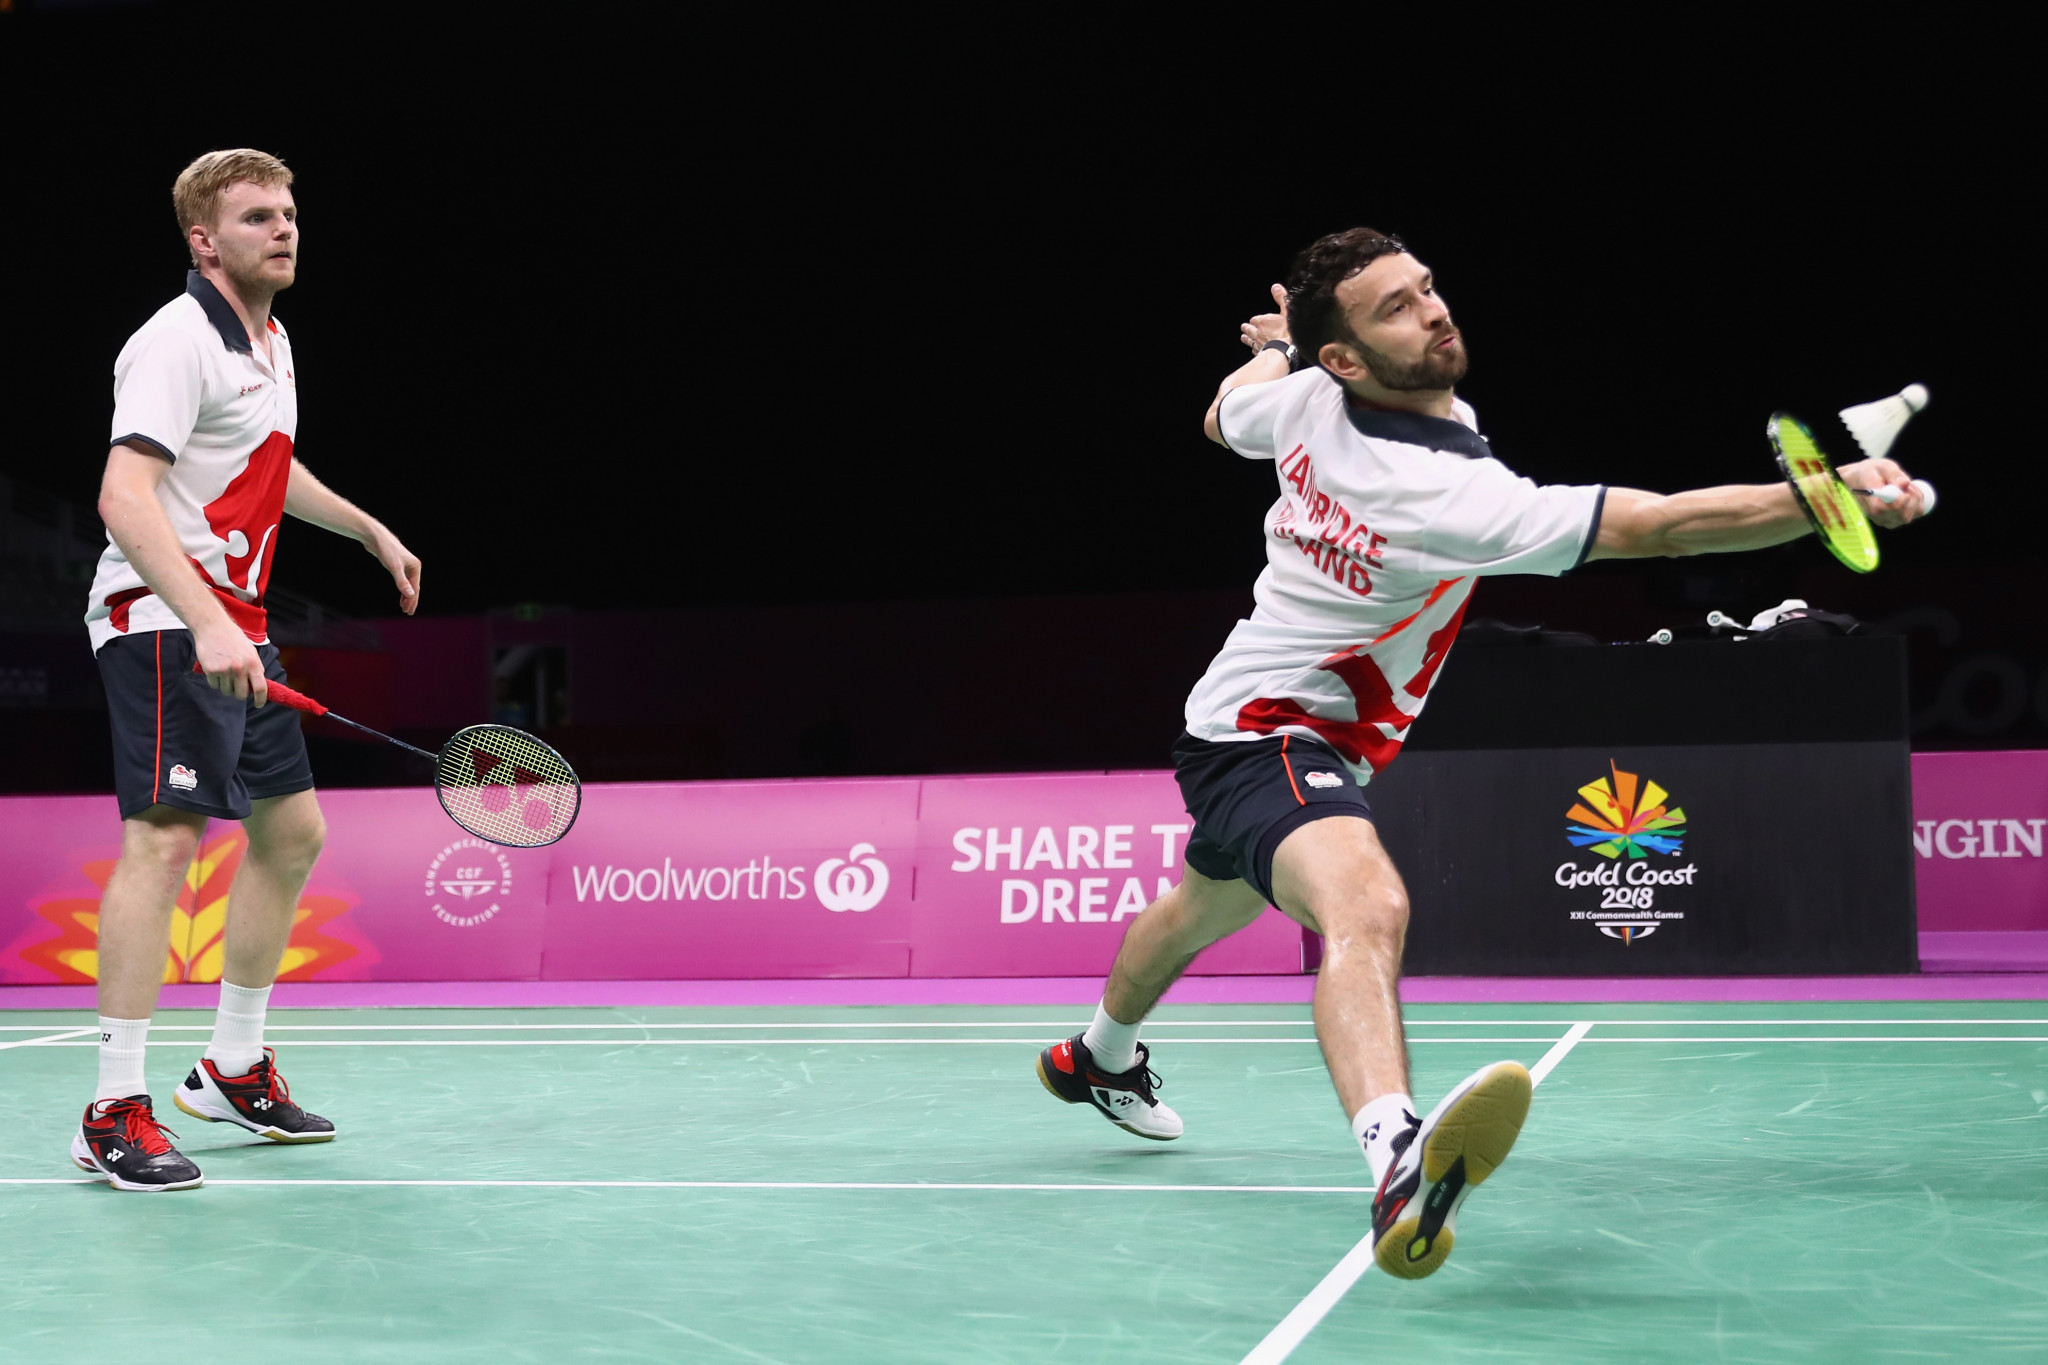 Chris Langridge won a Commonwealth Games silver medal in the men's double with partner Marcus Ellis, left, at Gold Coast 2018 and has high hopes for Birmingham 2022 ©Getty Images